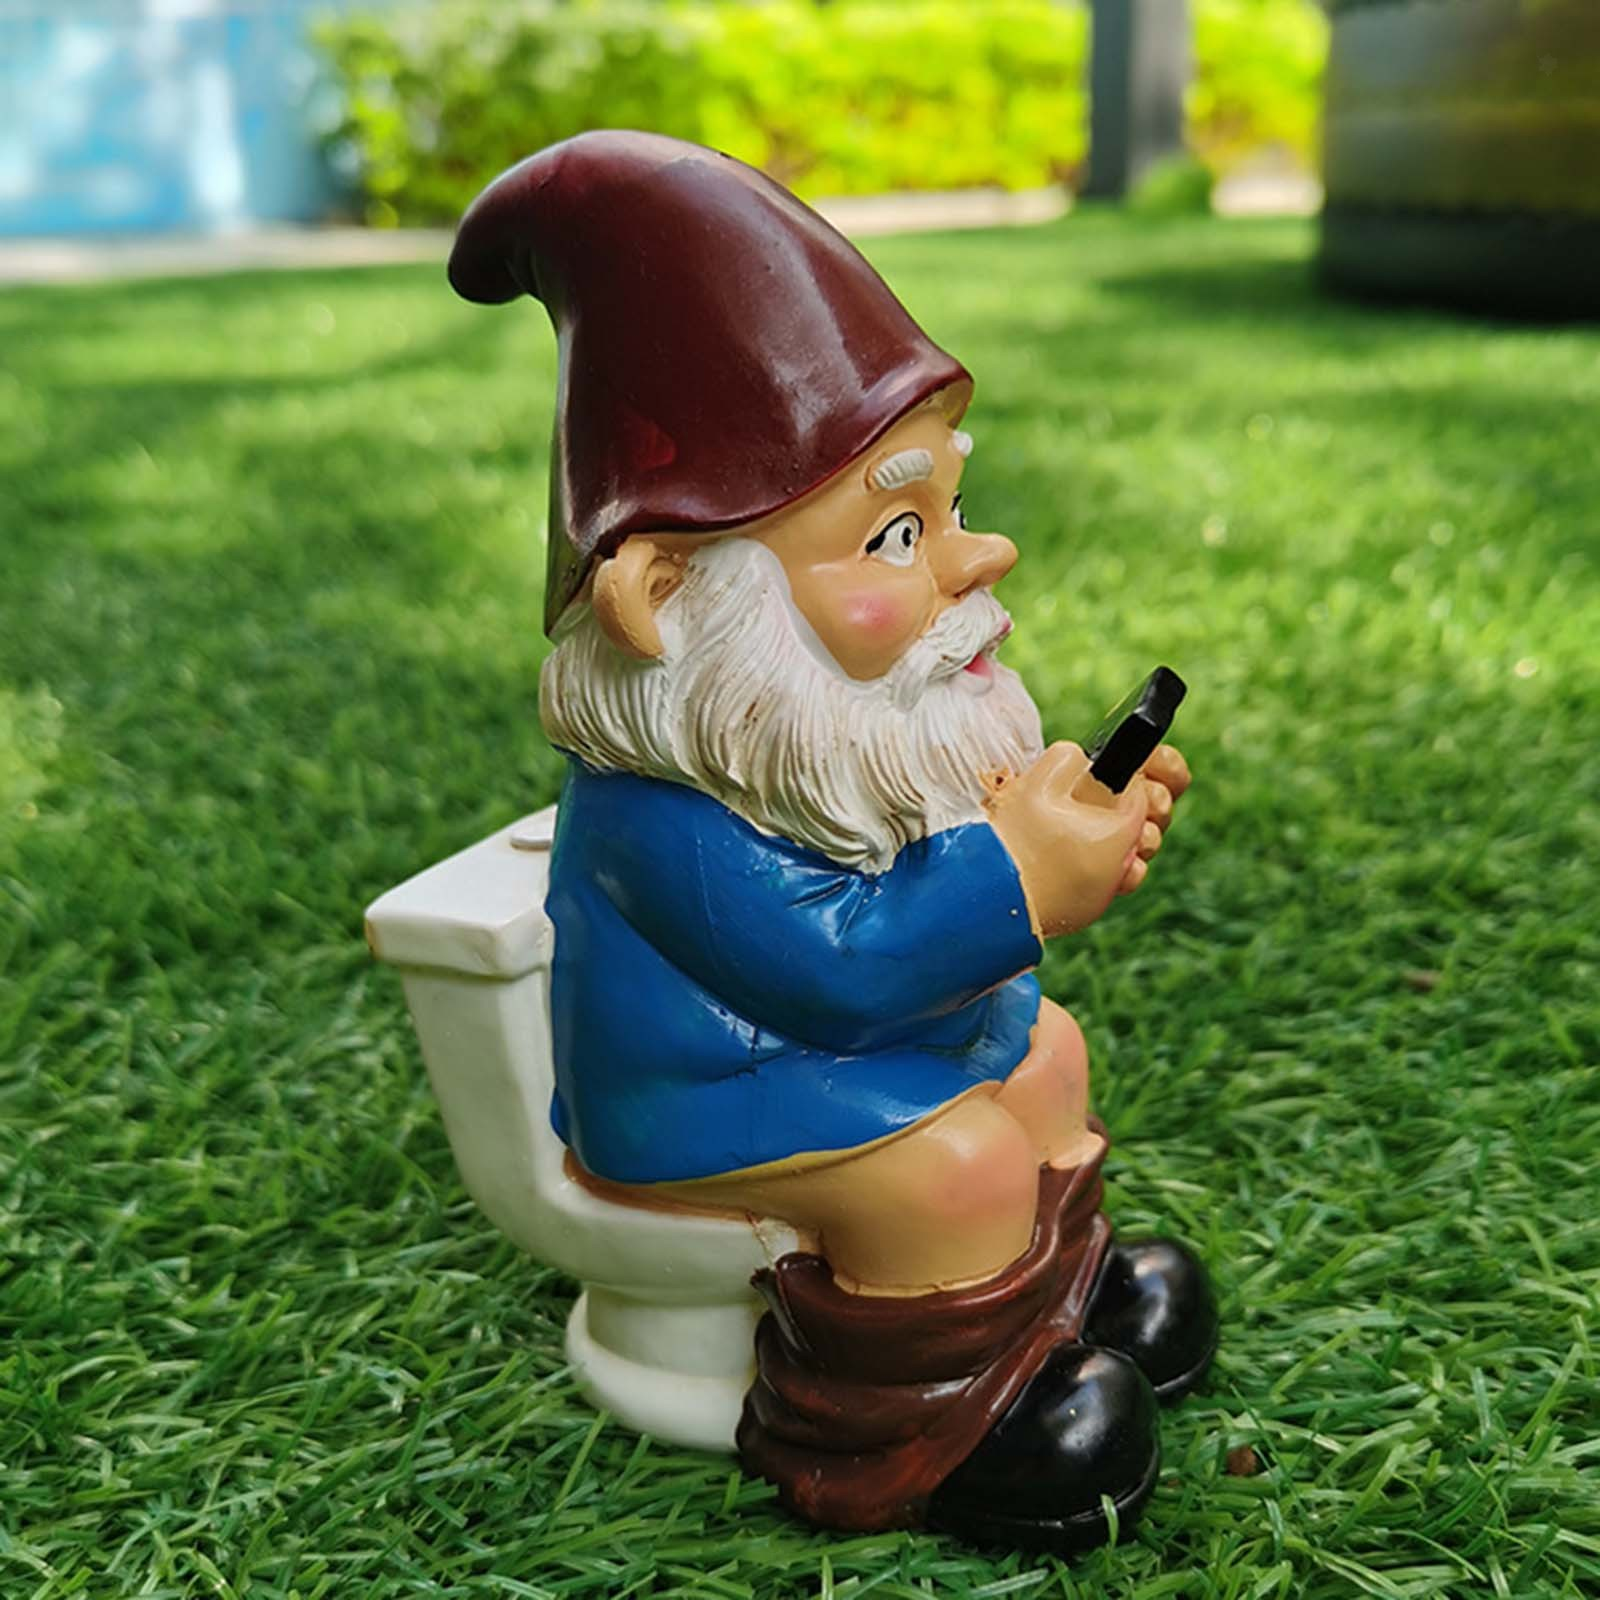 thumbnail 34 - Funny Resin Naughty Garden Gnome Statue Ornaments Villa Home Figurines